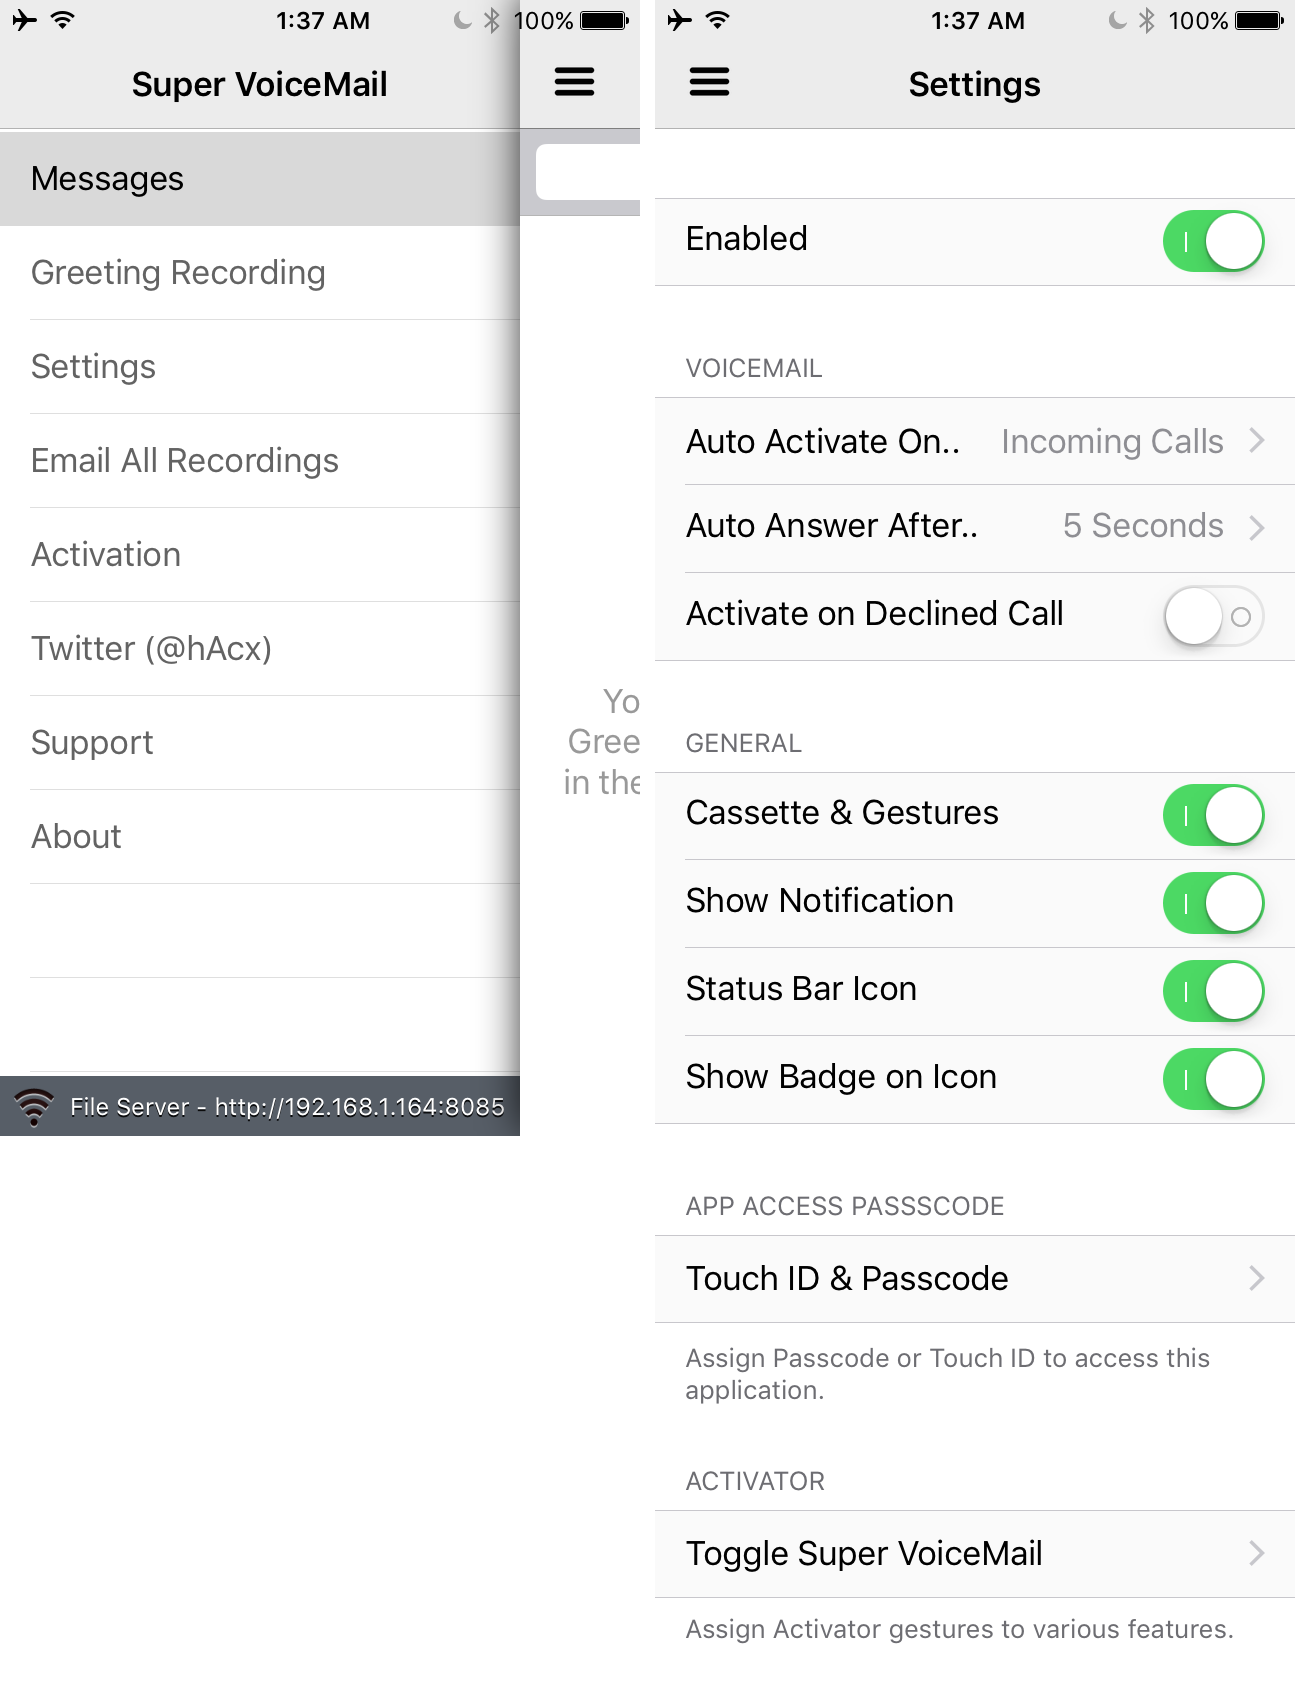 Super VoiceMail Settings